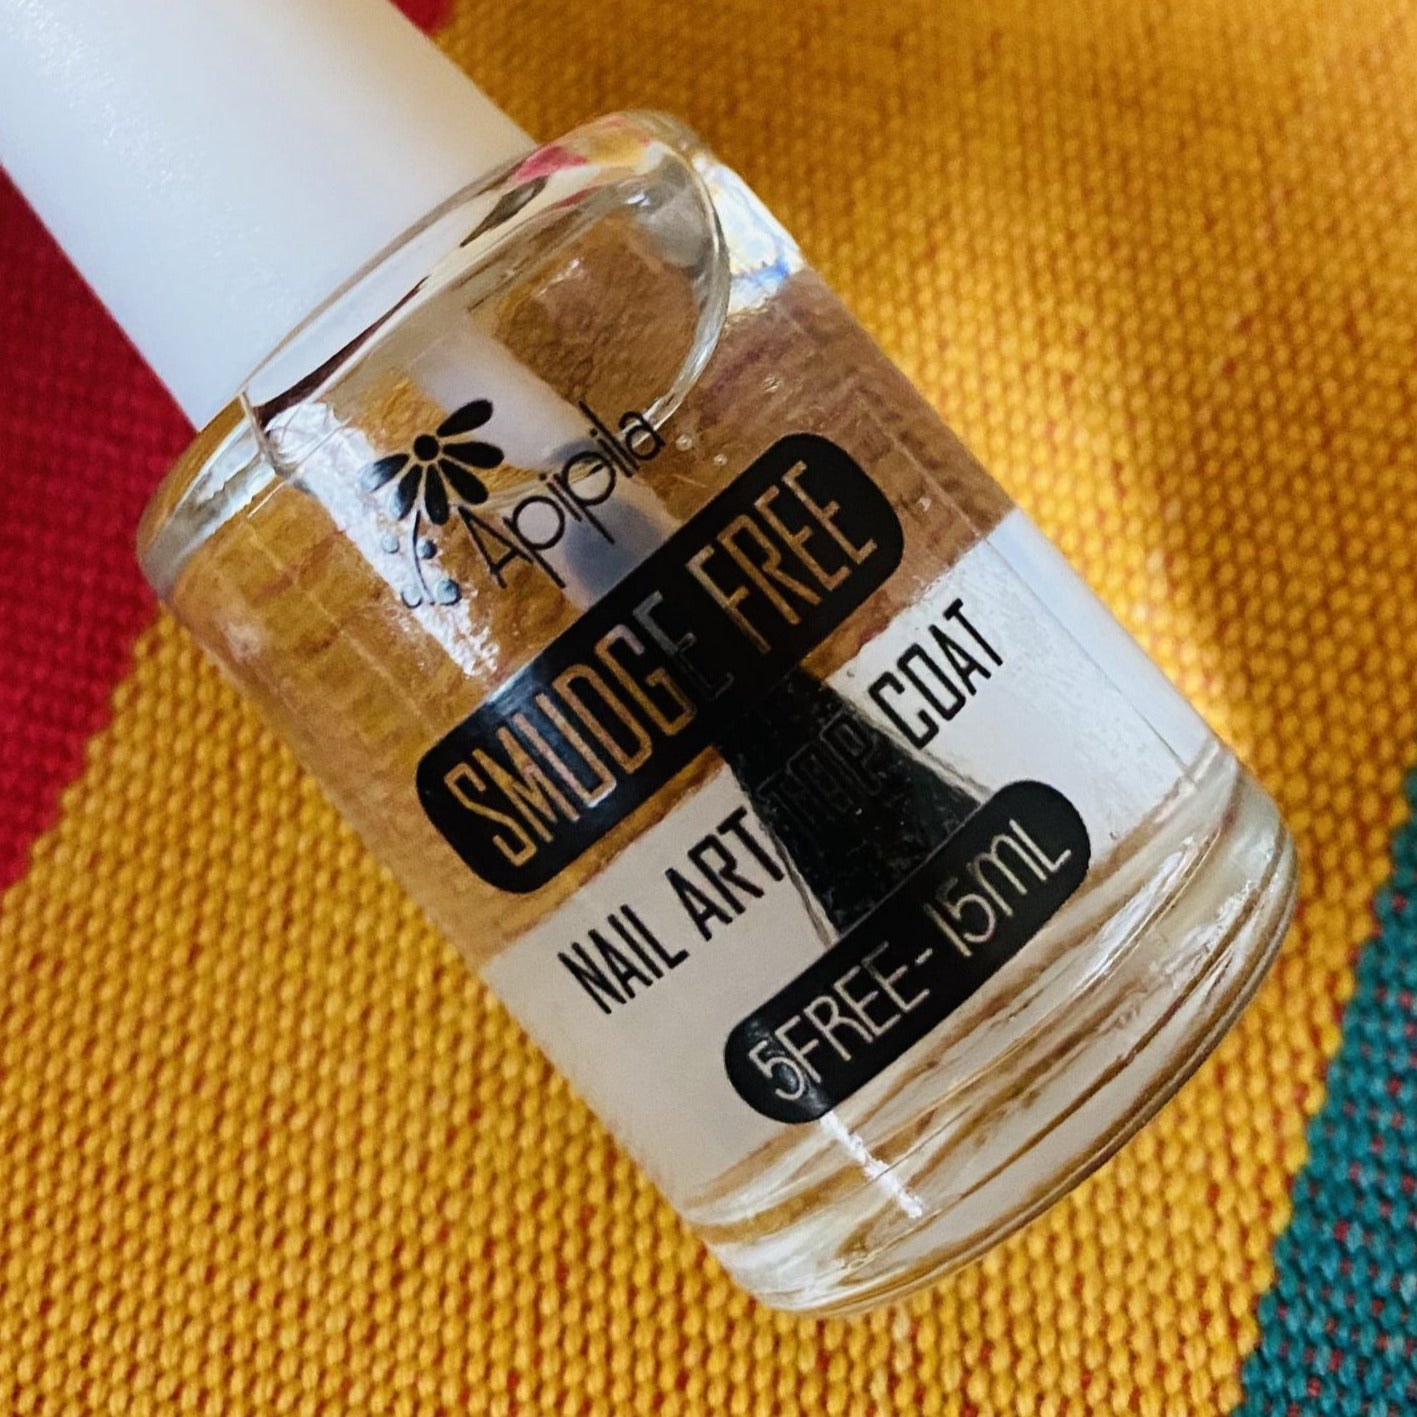 Smudge Free Nail Art Top Coat by Apipila